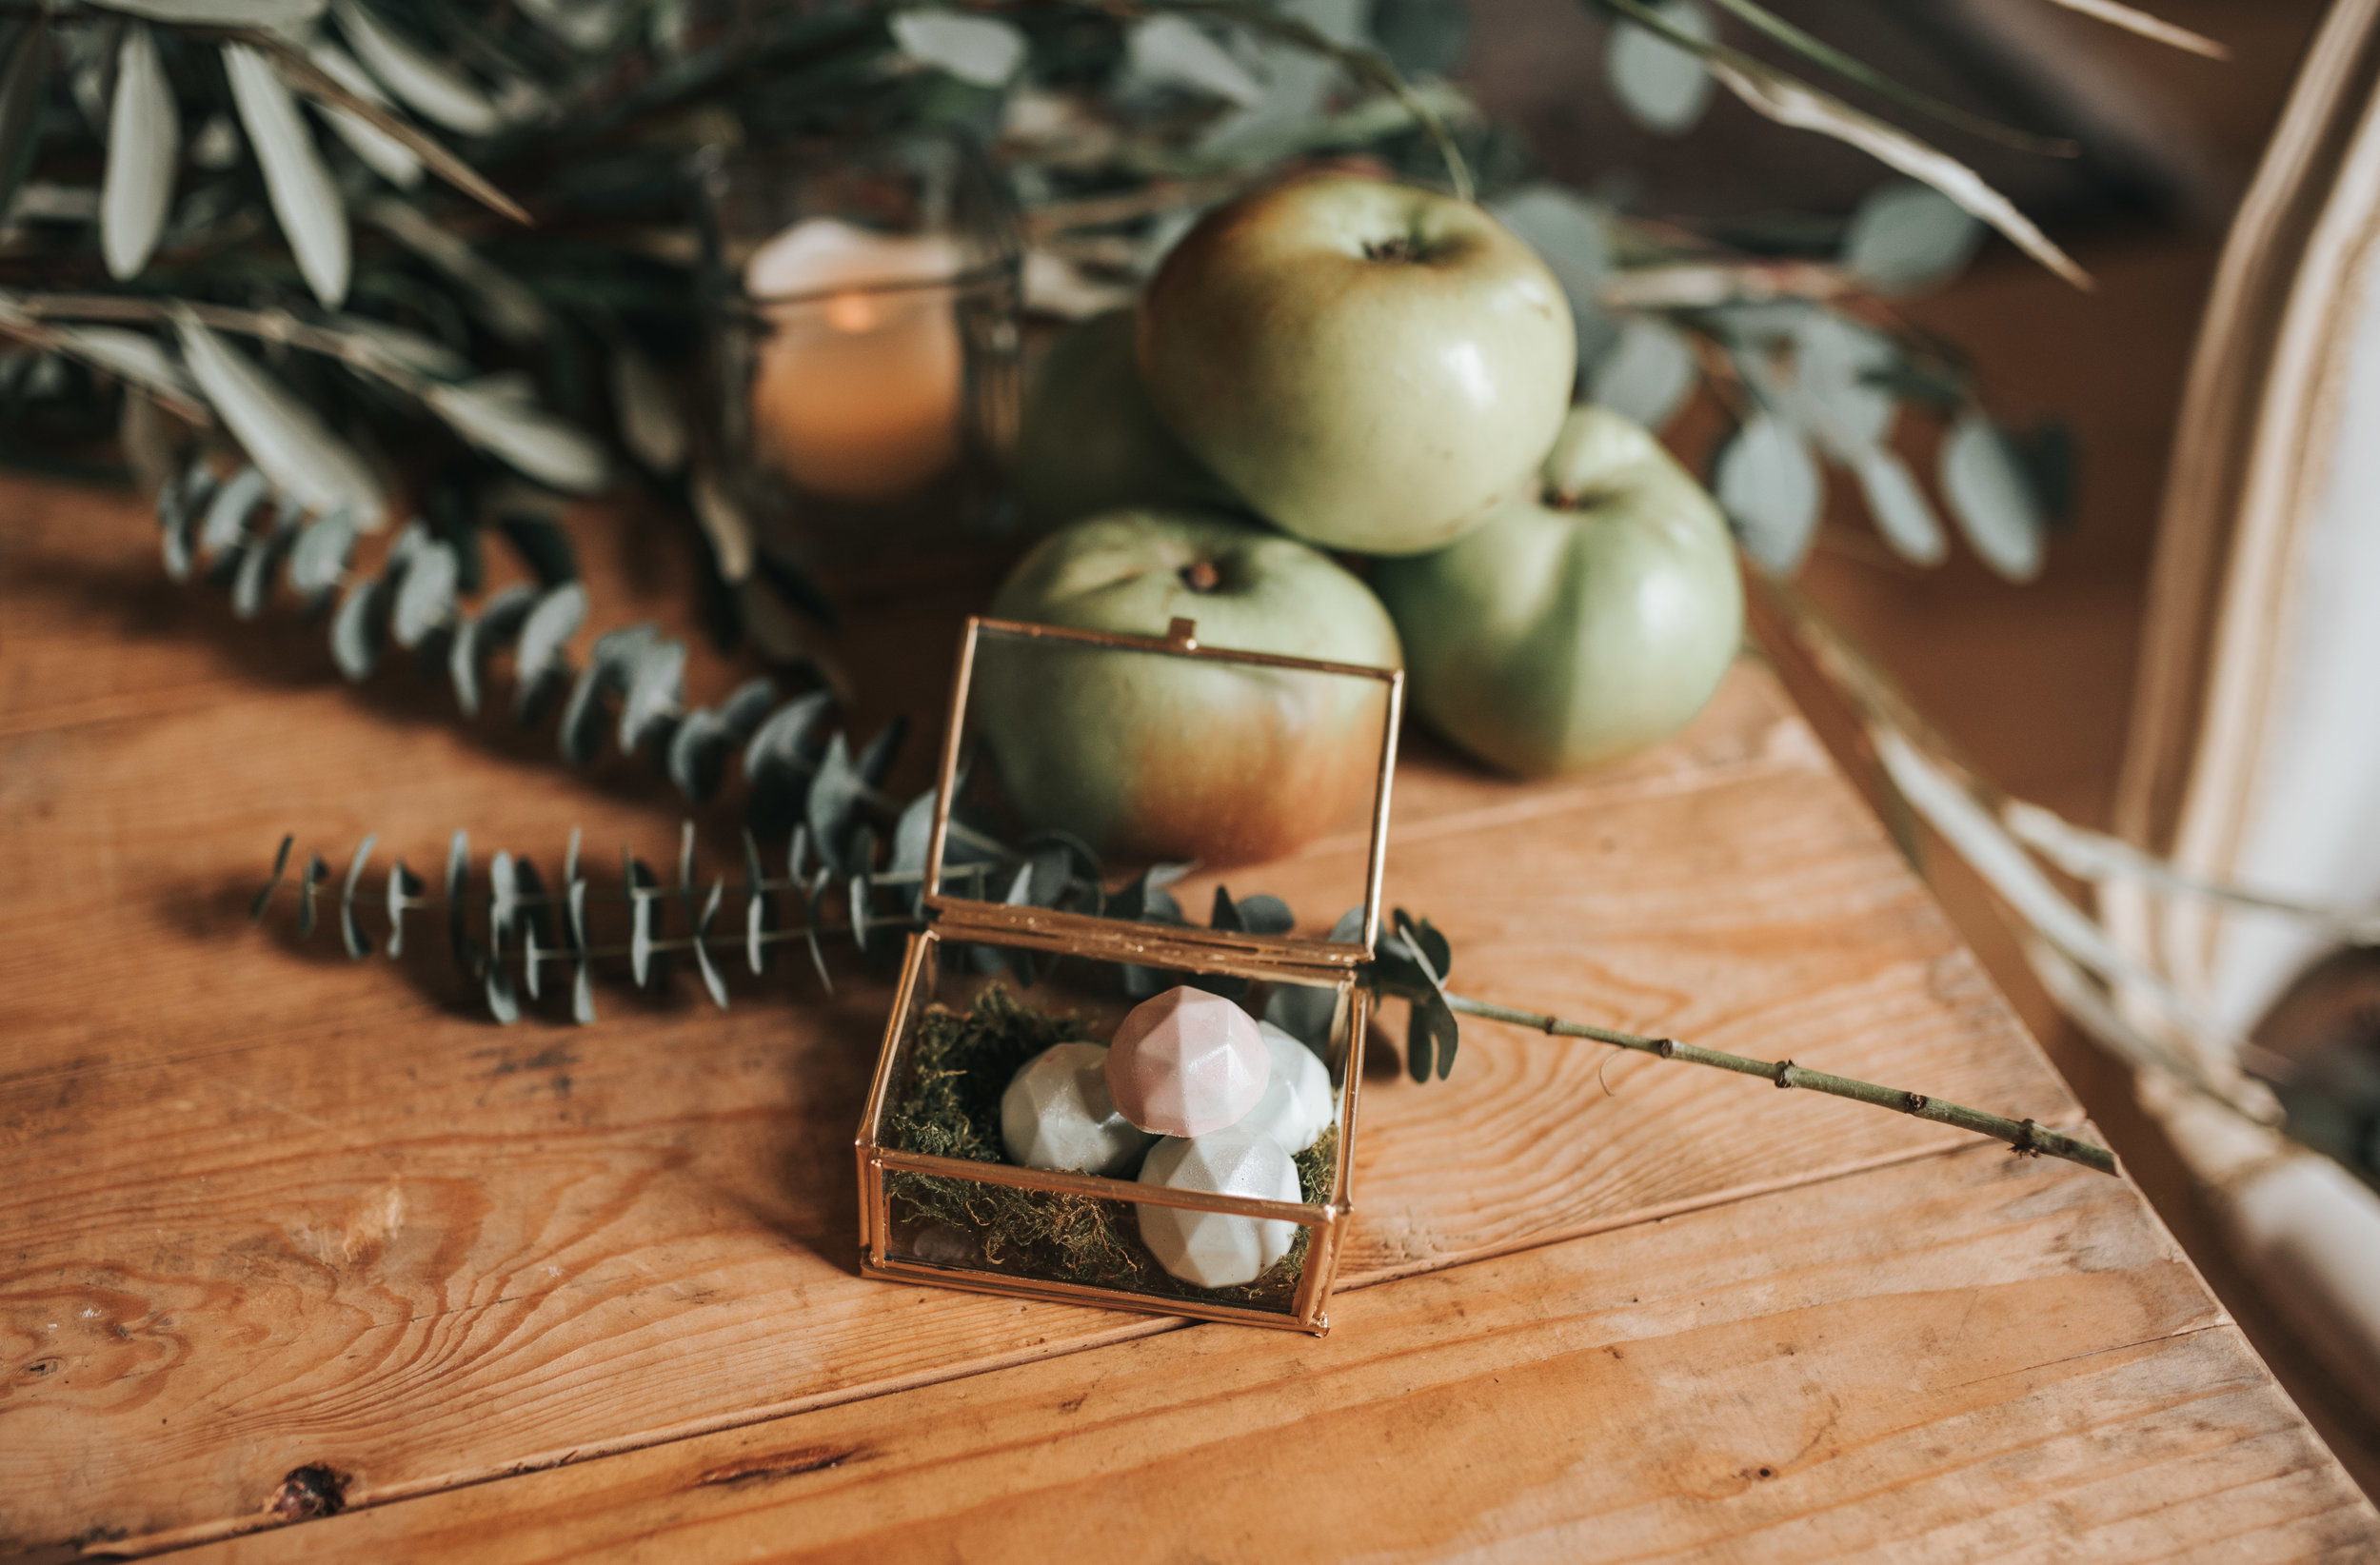 Apple and dusty white image for matrimonial pictures.jpg